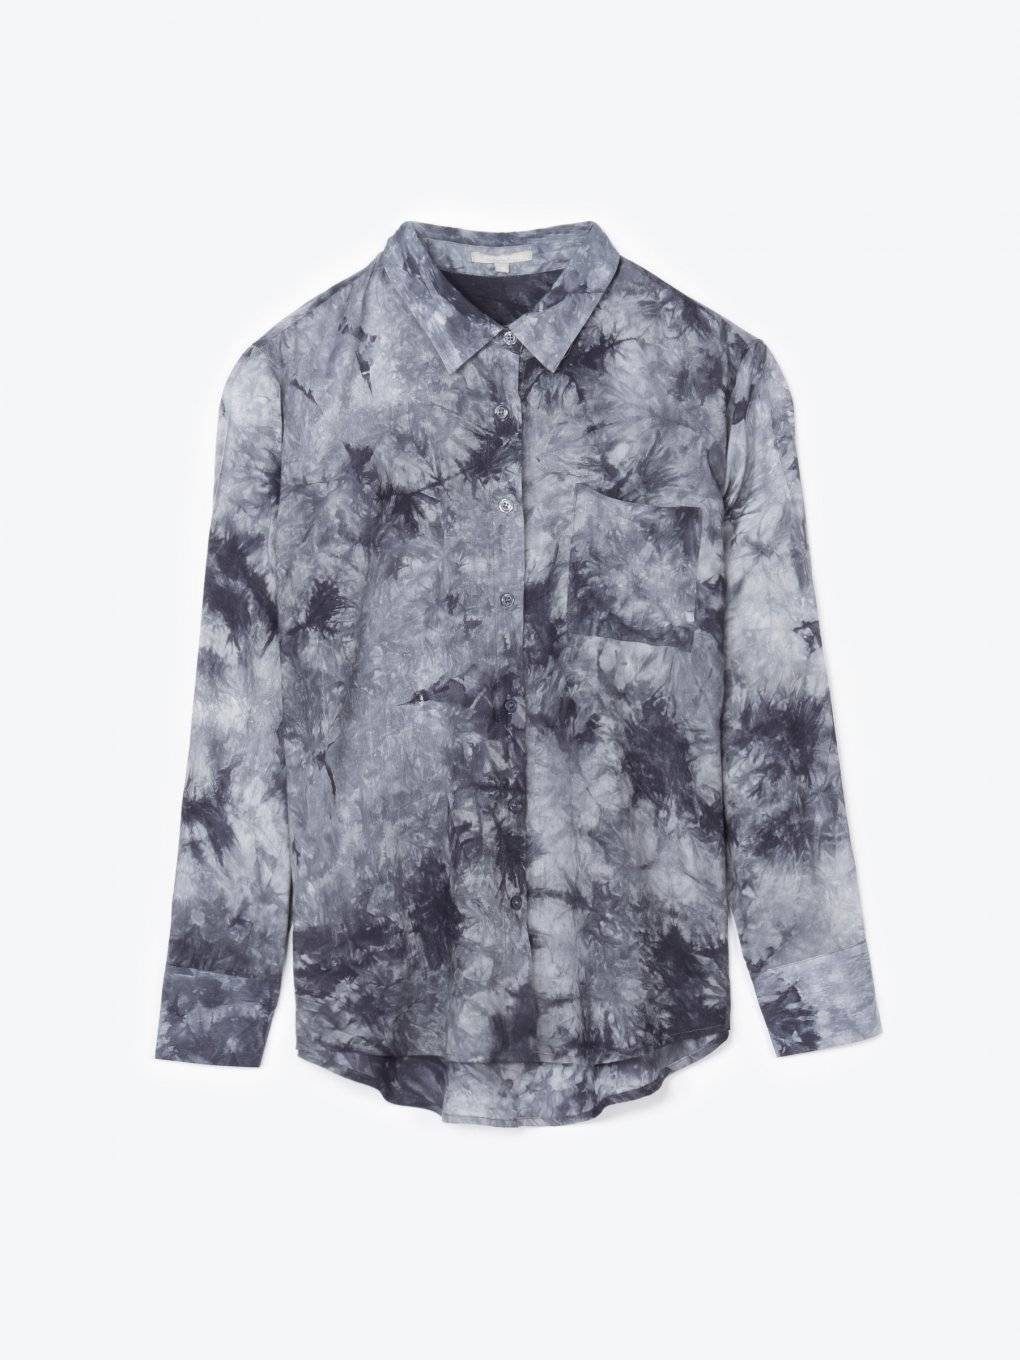 Tie dye oversized fit shirt